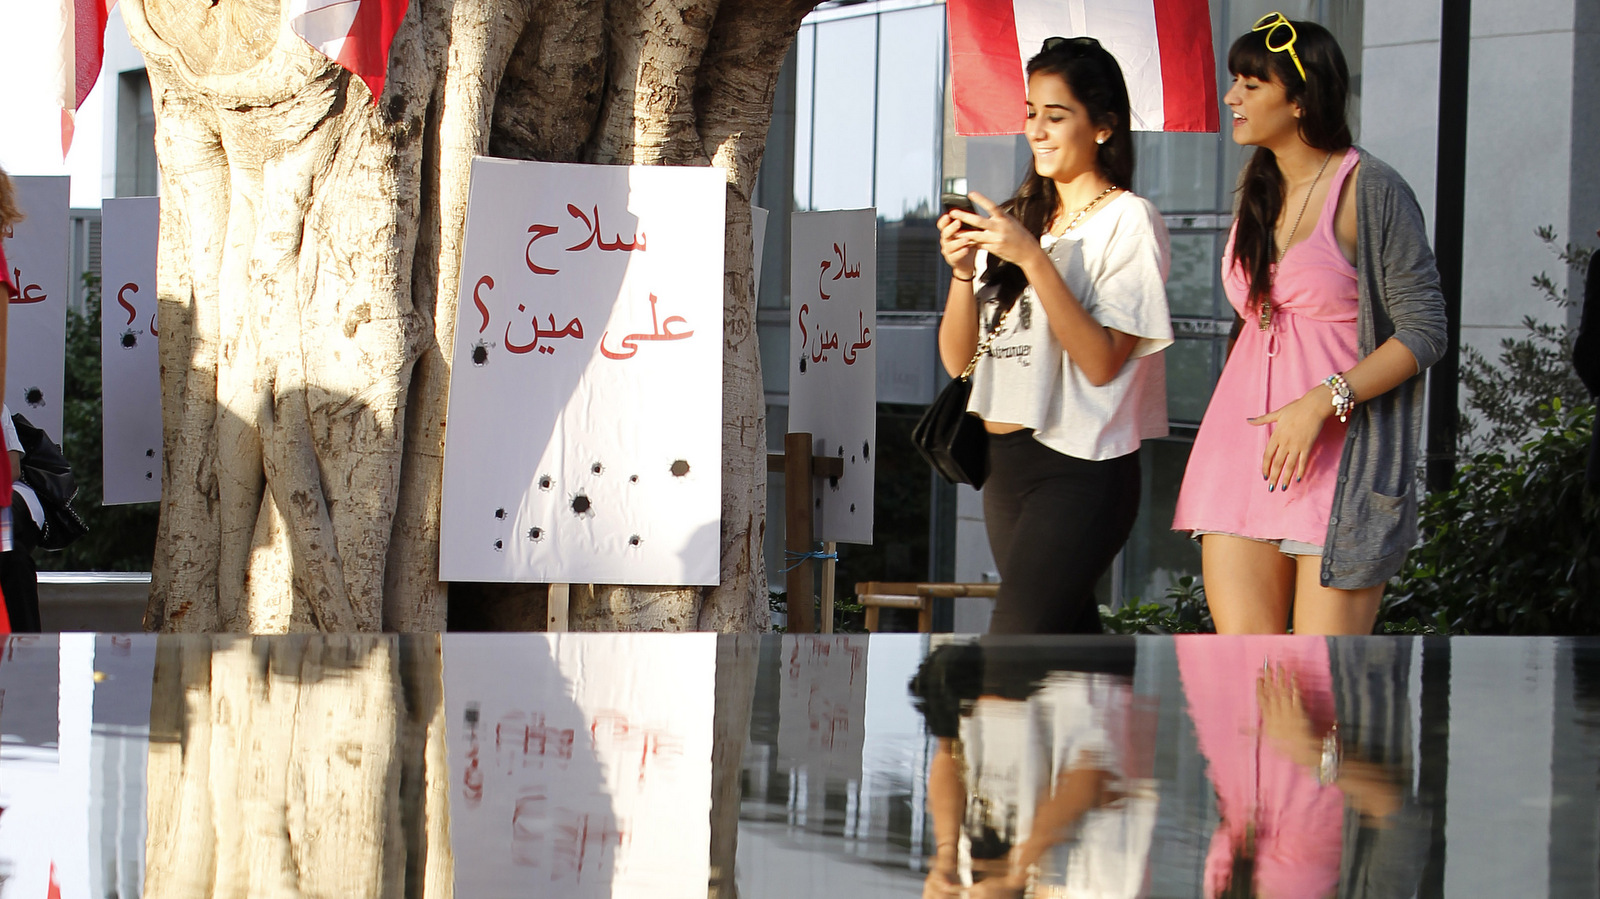 Lebanese activists stand near a banner that reads in Arabic: